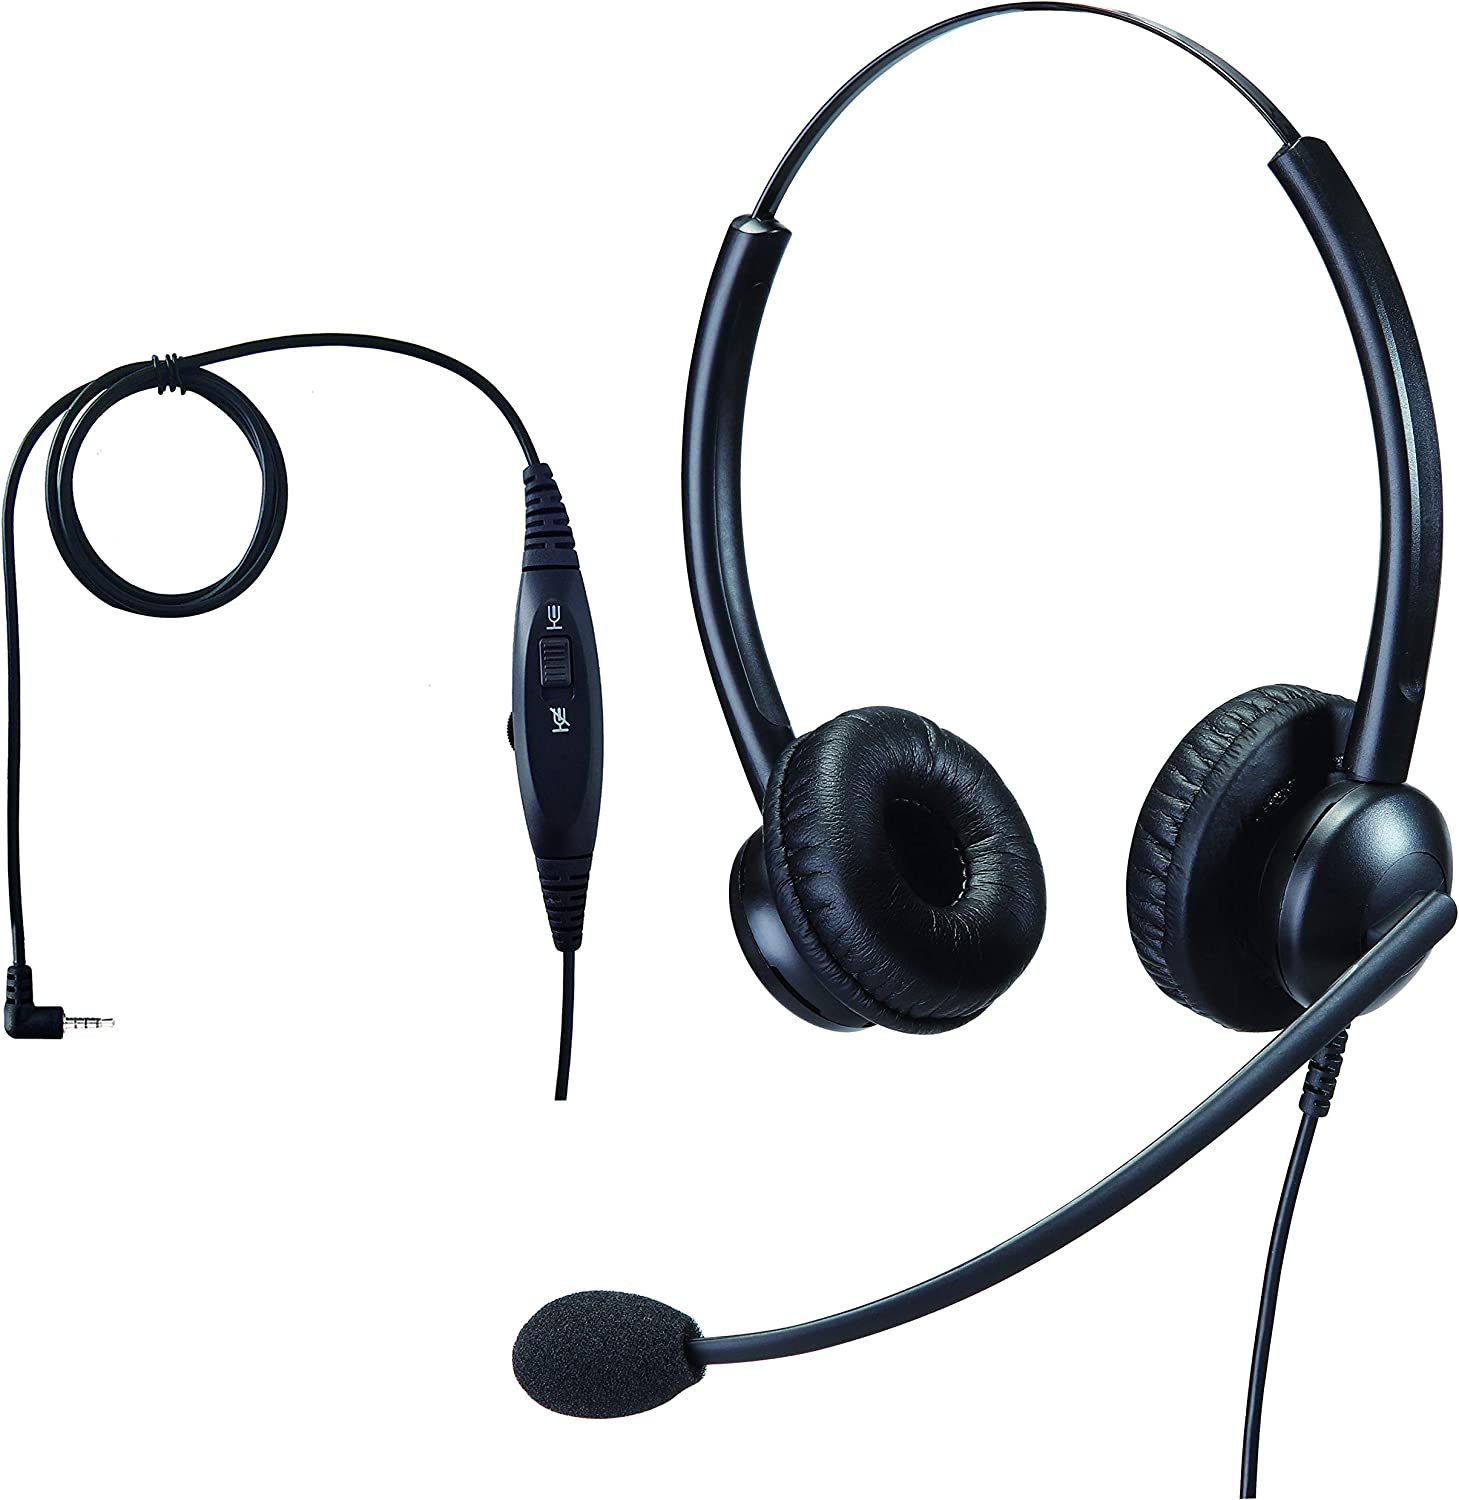 Jiade 2.5mm Jack Stereo Binaural Telephone Headset with Noise Cancelling Microphone for Landline Vtech Uniden Yealink Cisco Polycom Panasonic UnidenCall Center Home Office and Cordless Dect Phones